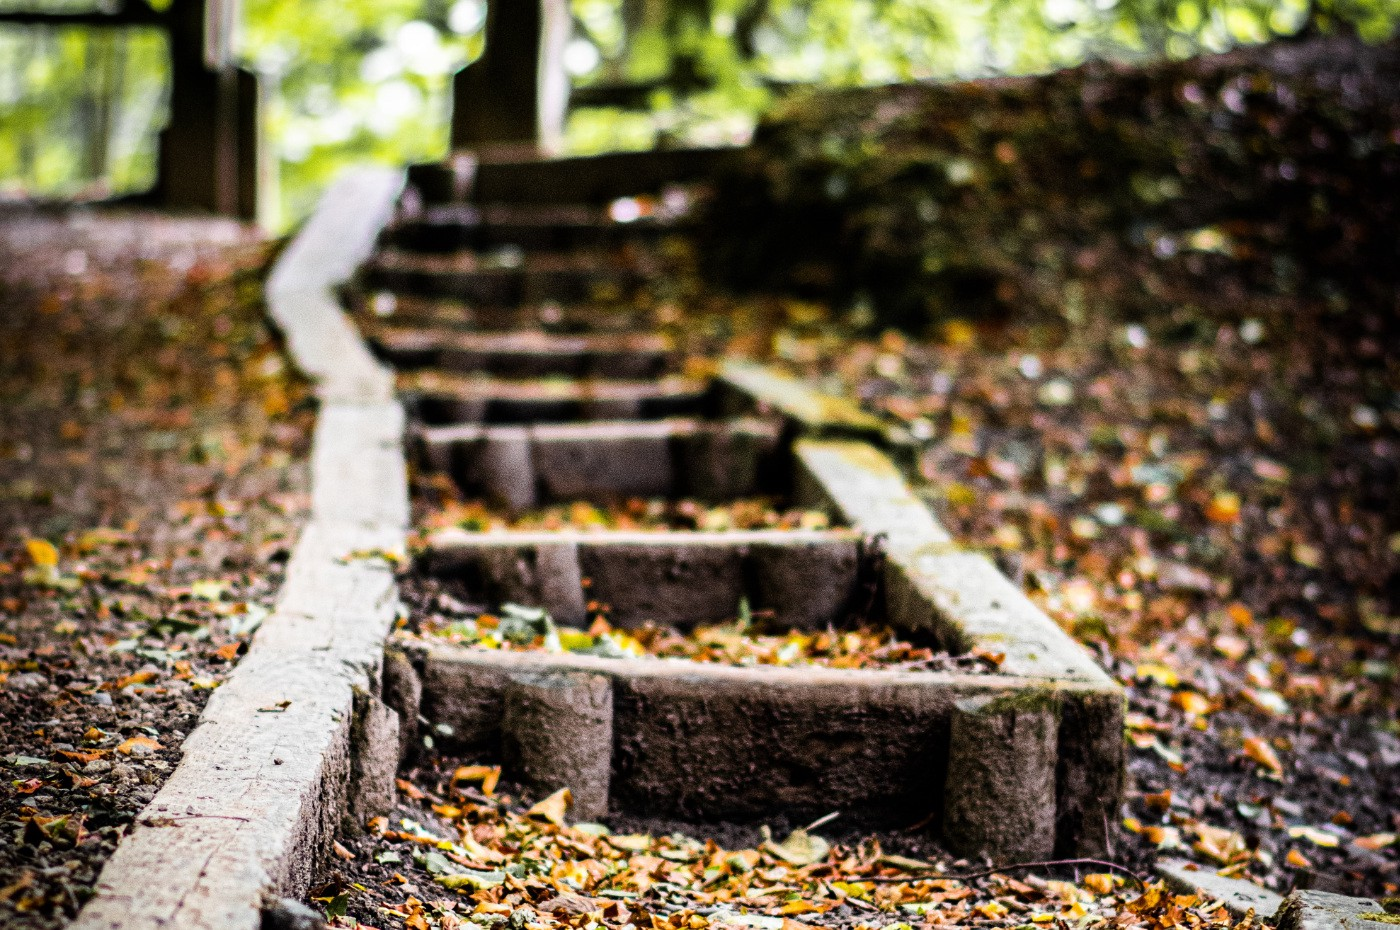 Wooden steps covered in leaves.